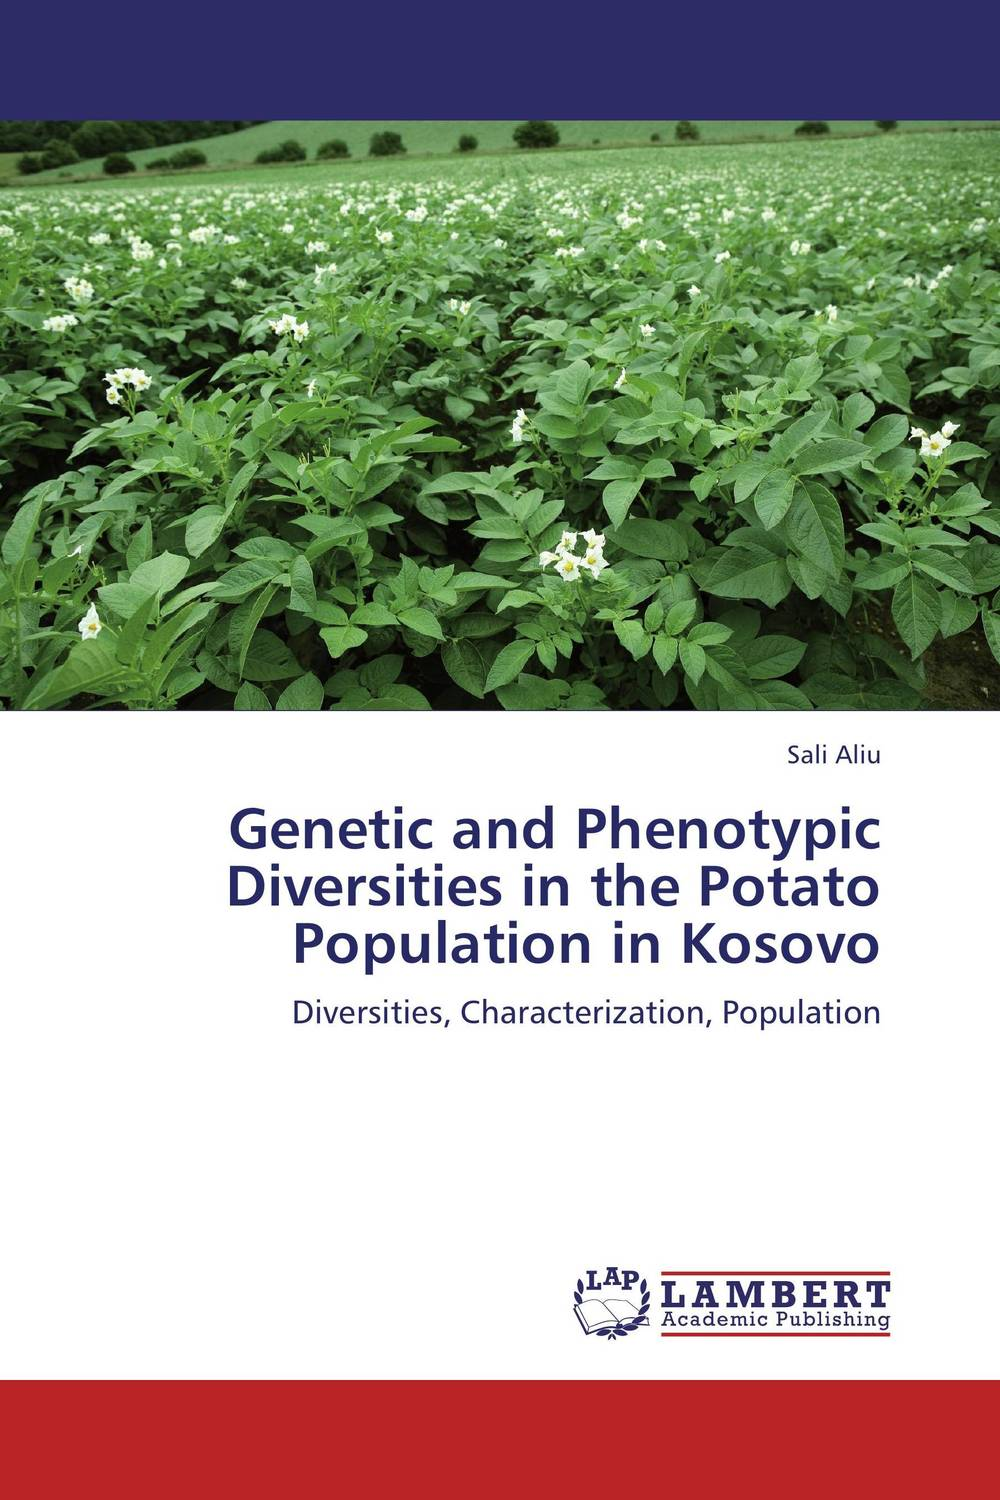 Genetic and Phenotypic Diversities in the Potato Population in Kosovo купить